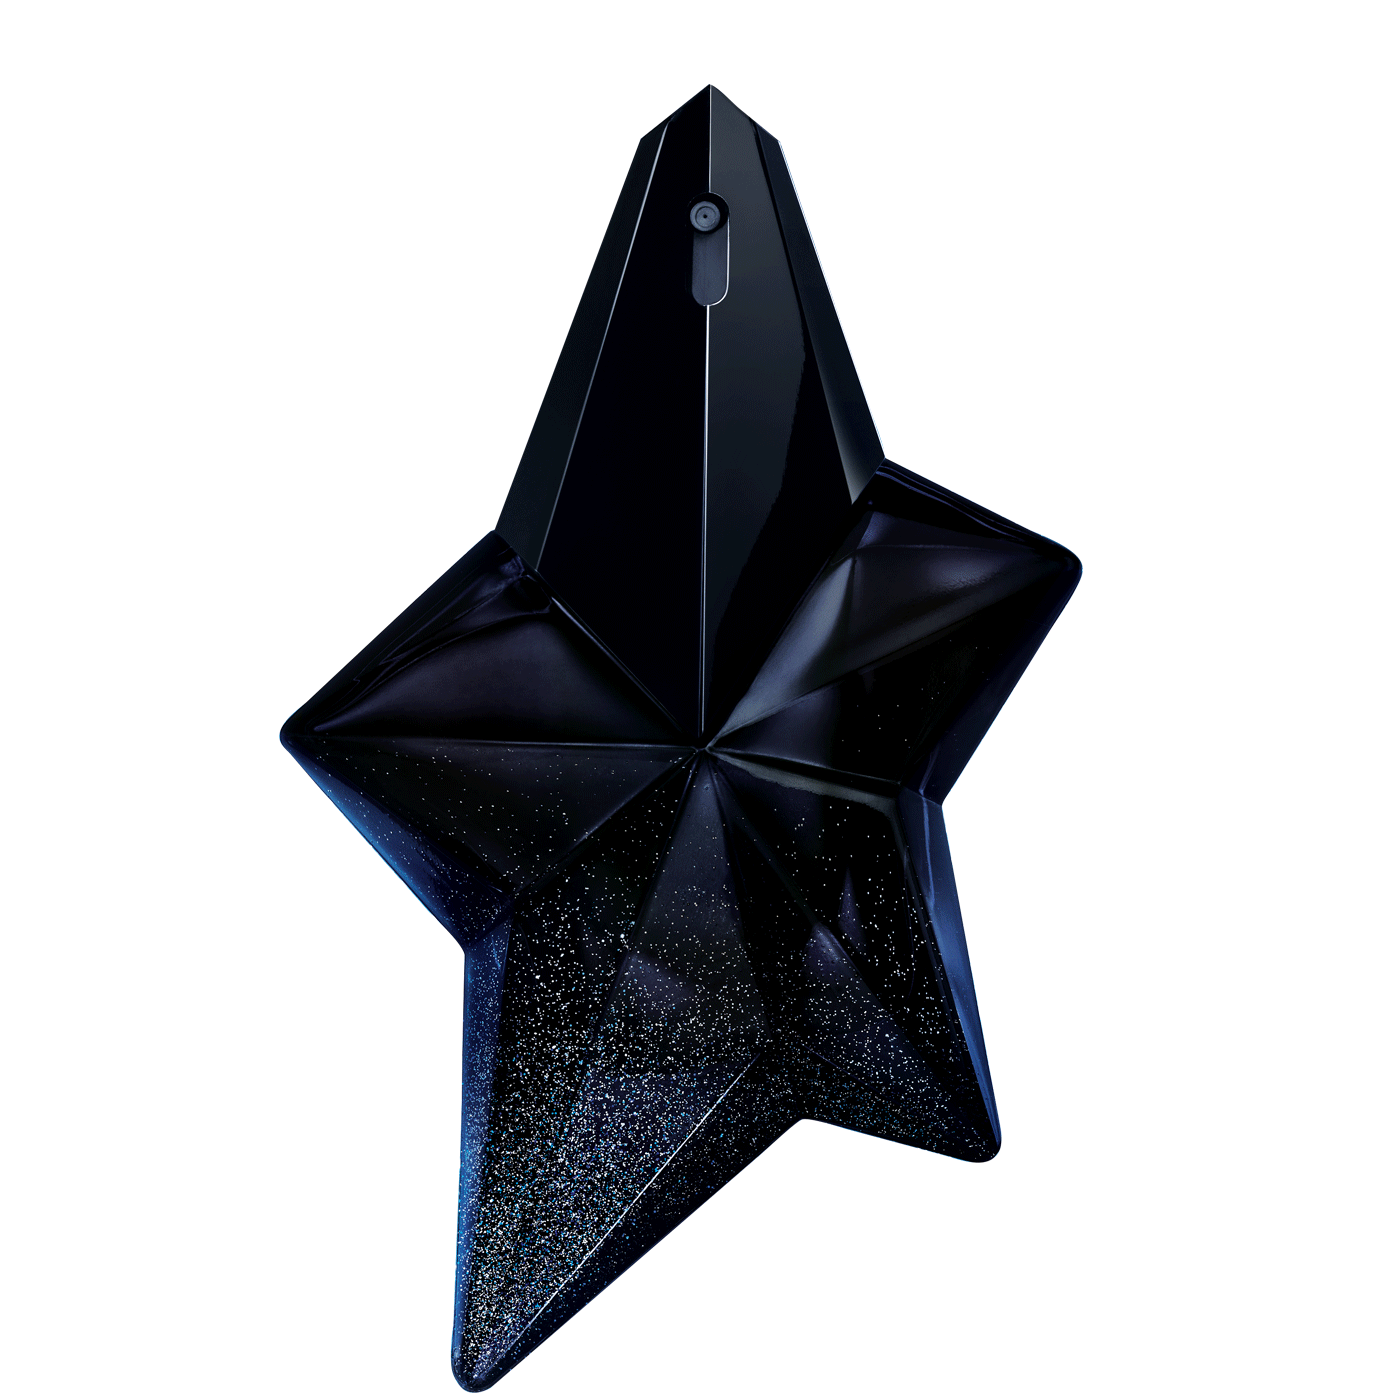 Angel Glamorama - This seductive new ANGEL star invites her to the glamorous universe of Thierry Mugler. With its special bottle treatment she will experience dramatic sensuality. This luxury Limited Edition of ANGEL Eau de Parfum is available in Refillable Spray.